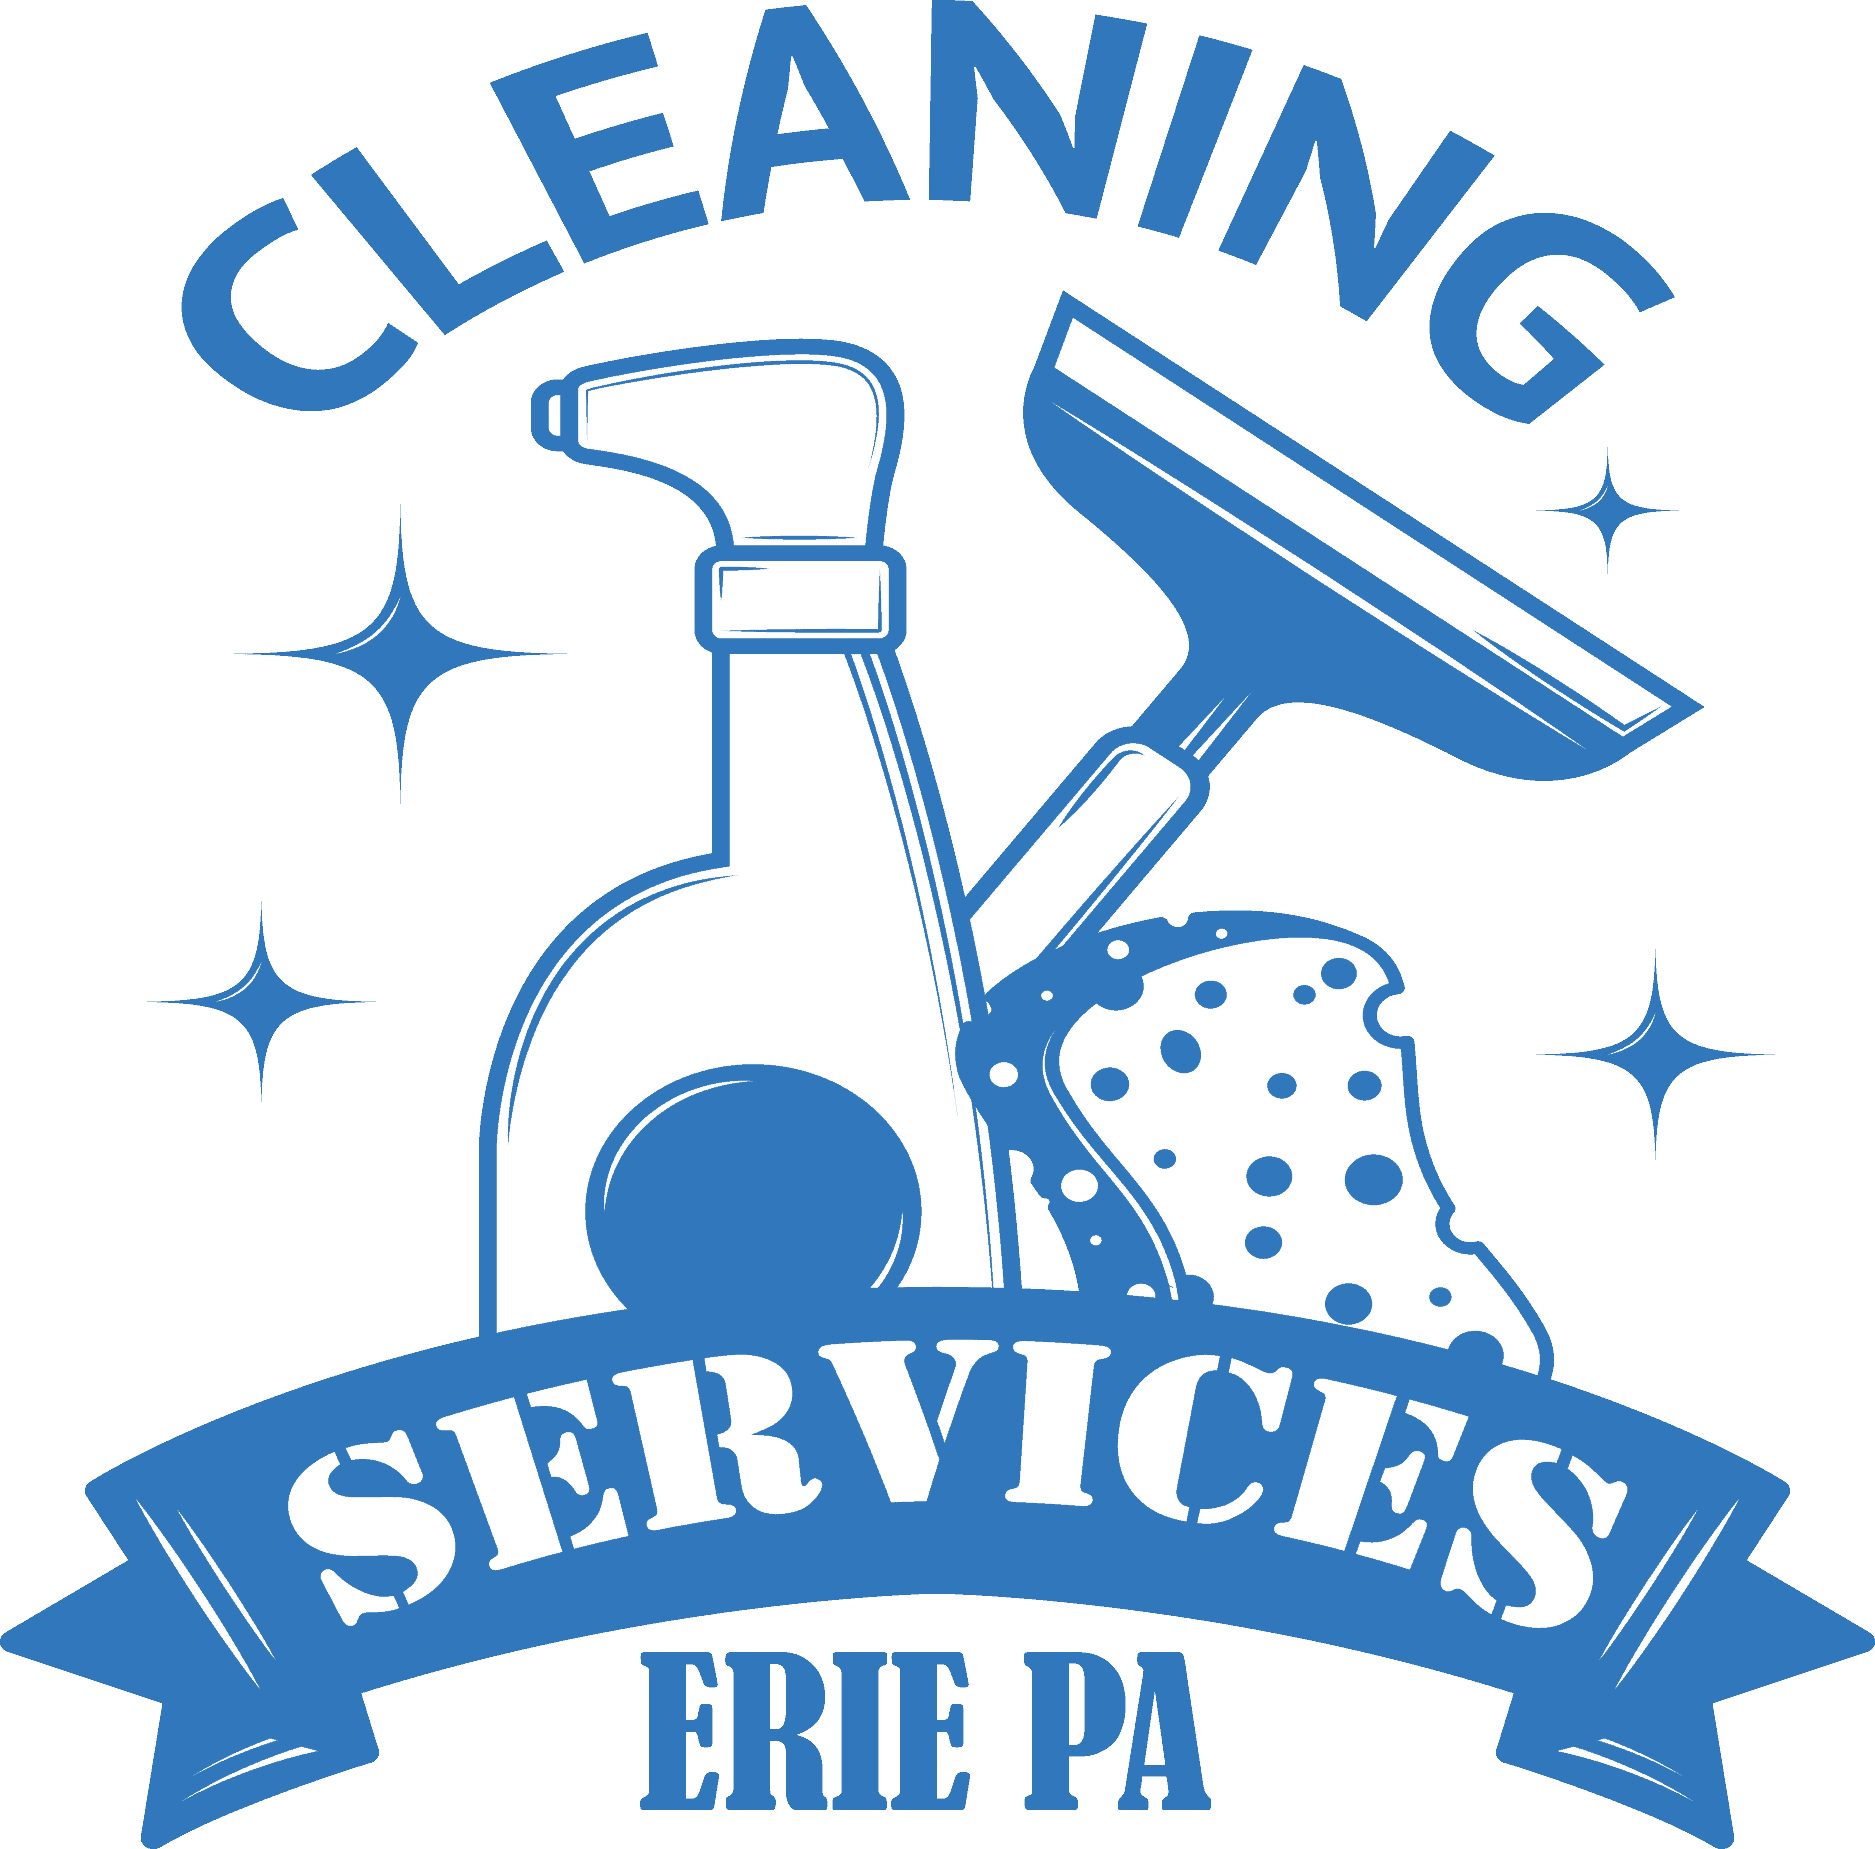 Cleaning Services Erie Pa - We clean it all! At an Affordable Rate